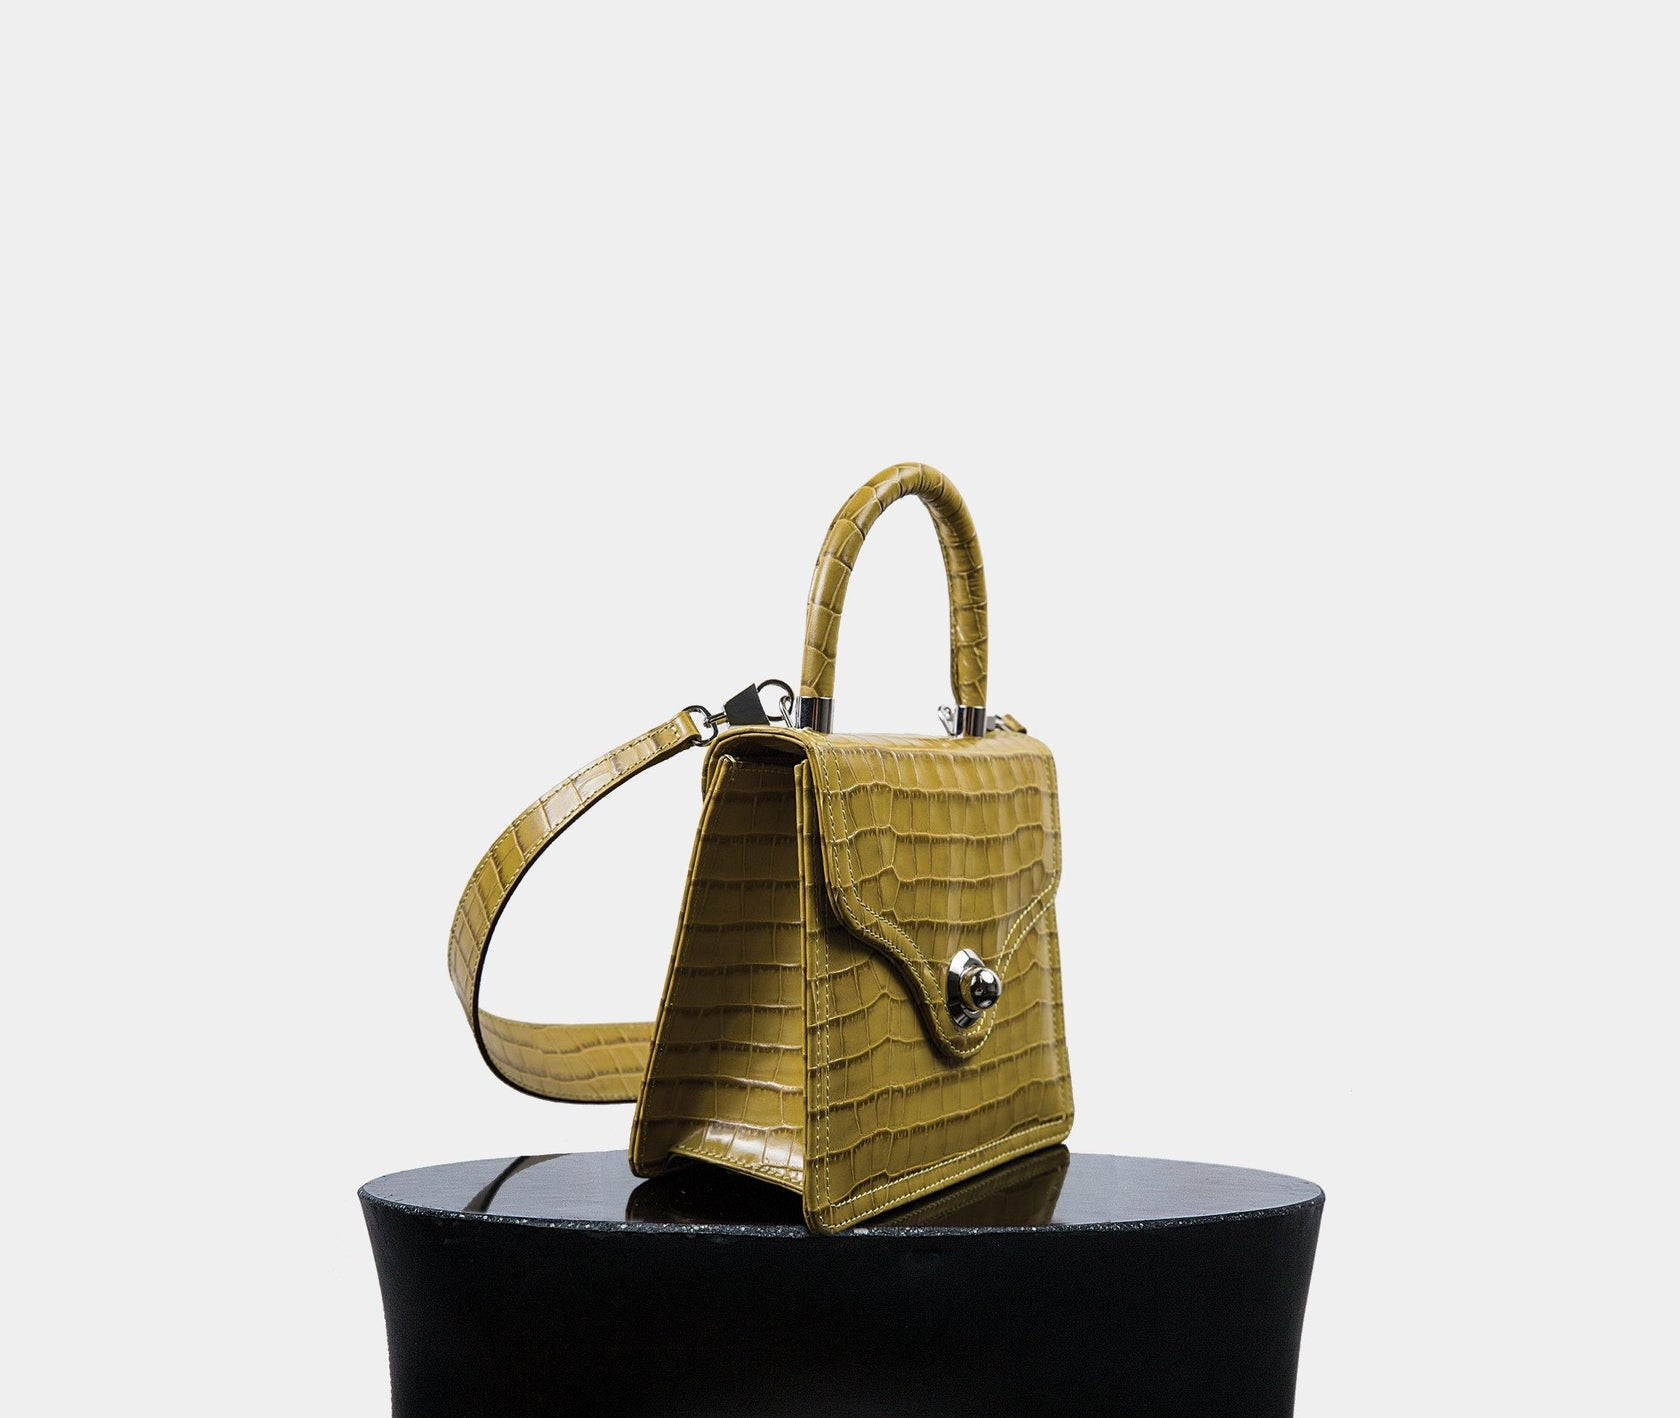 Lady Bag - Chartreuse Croc